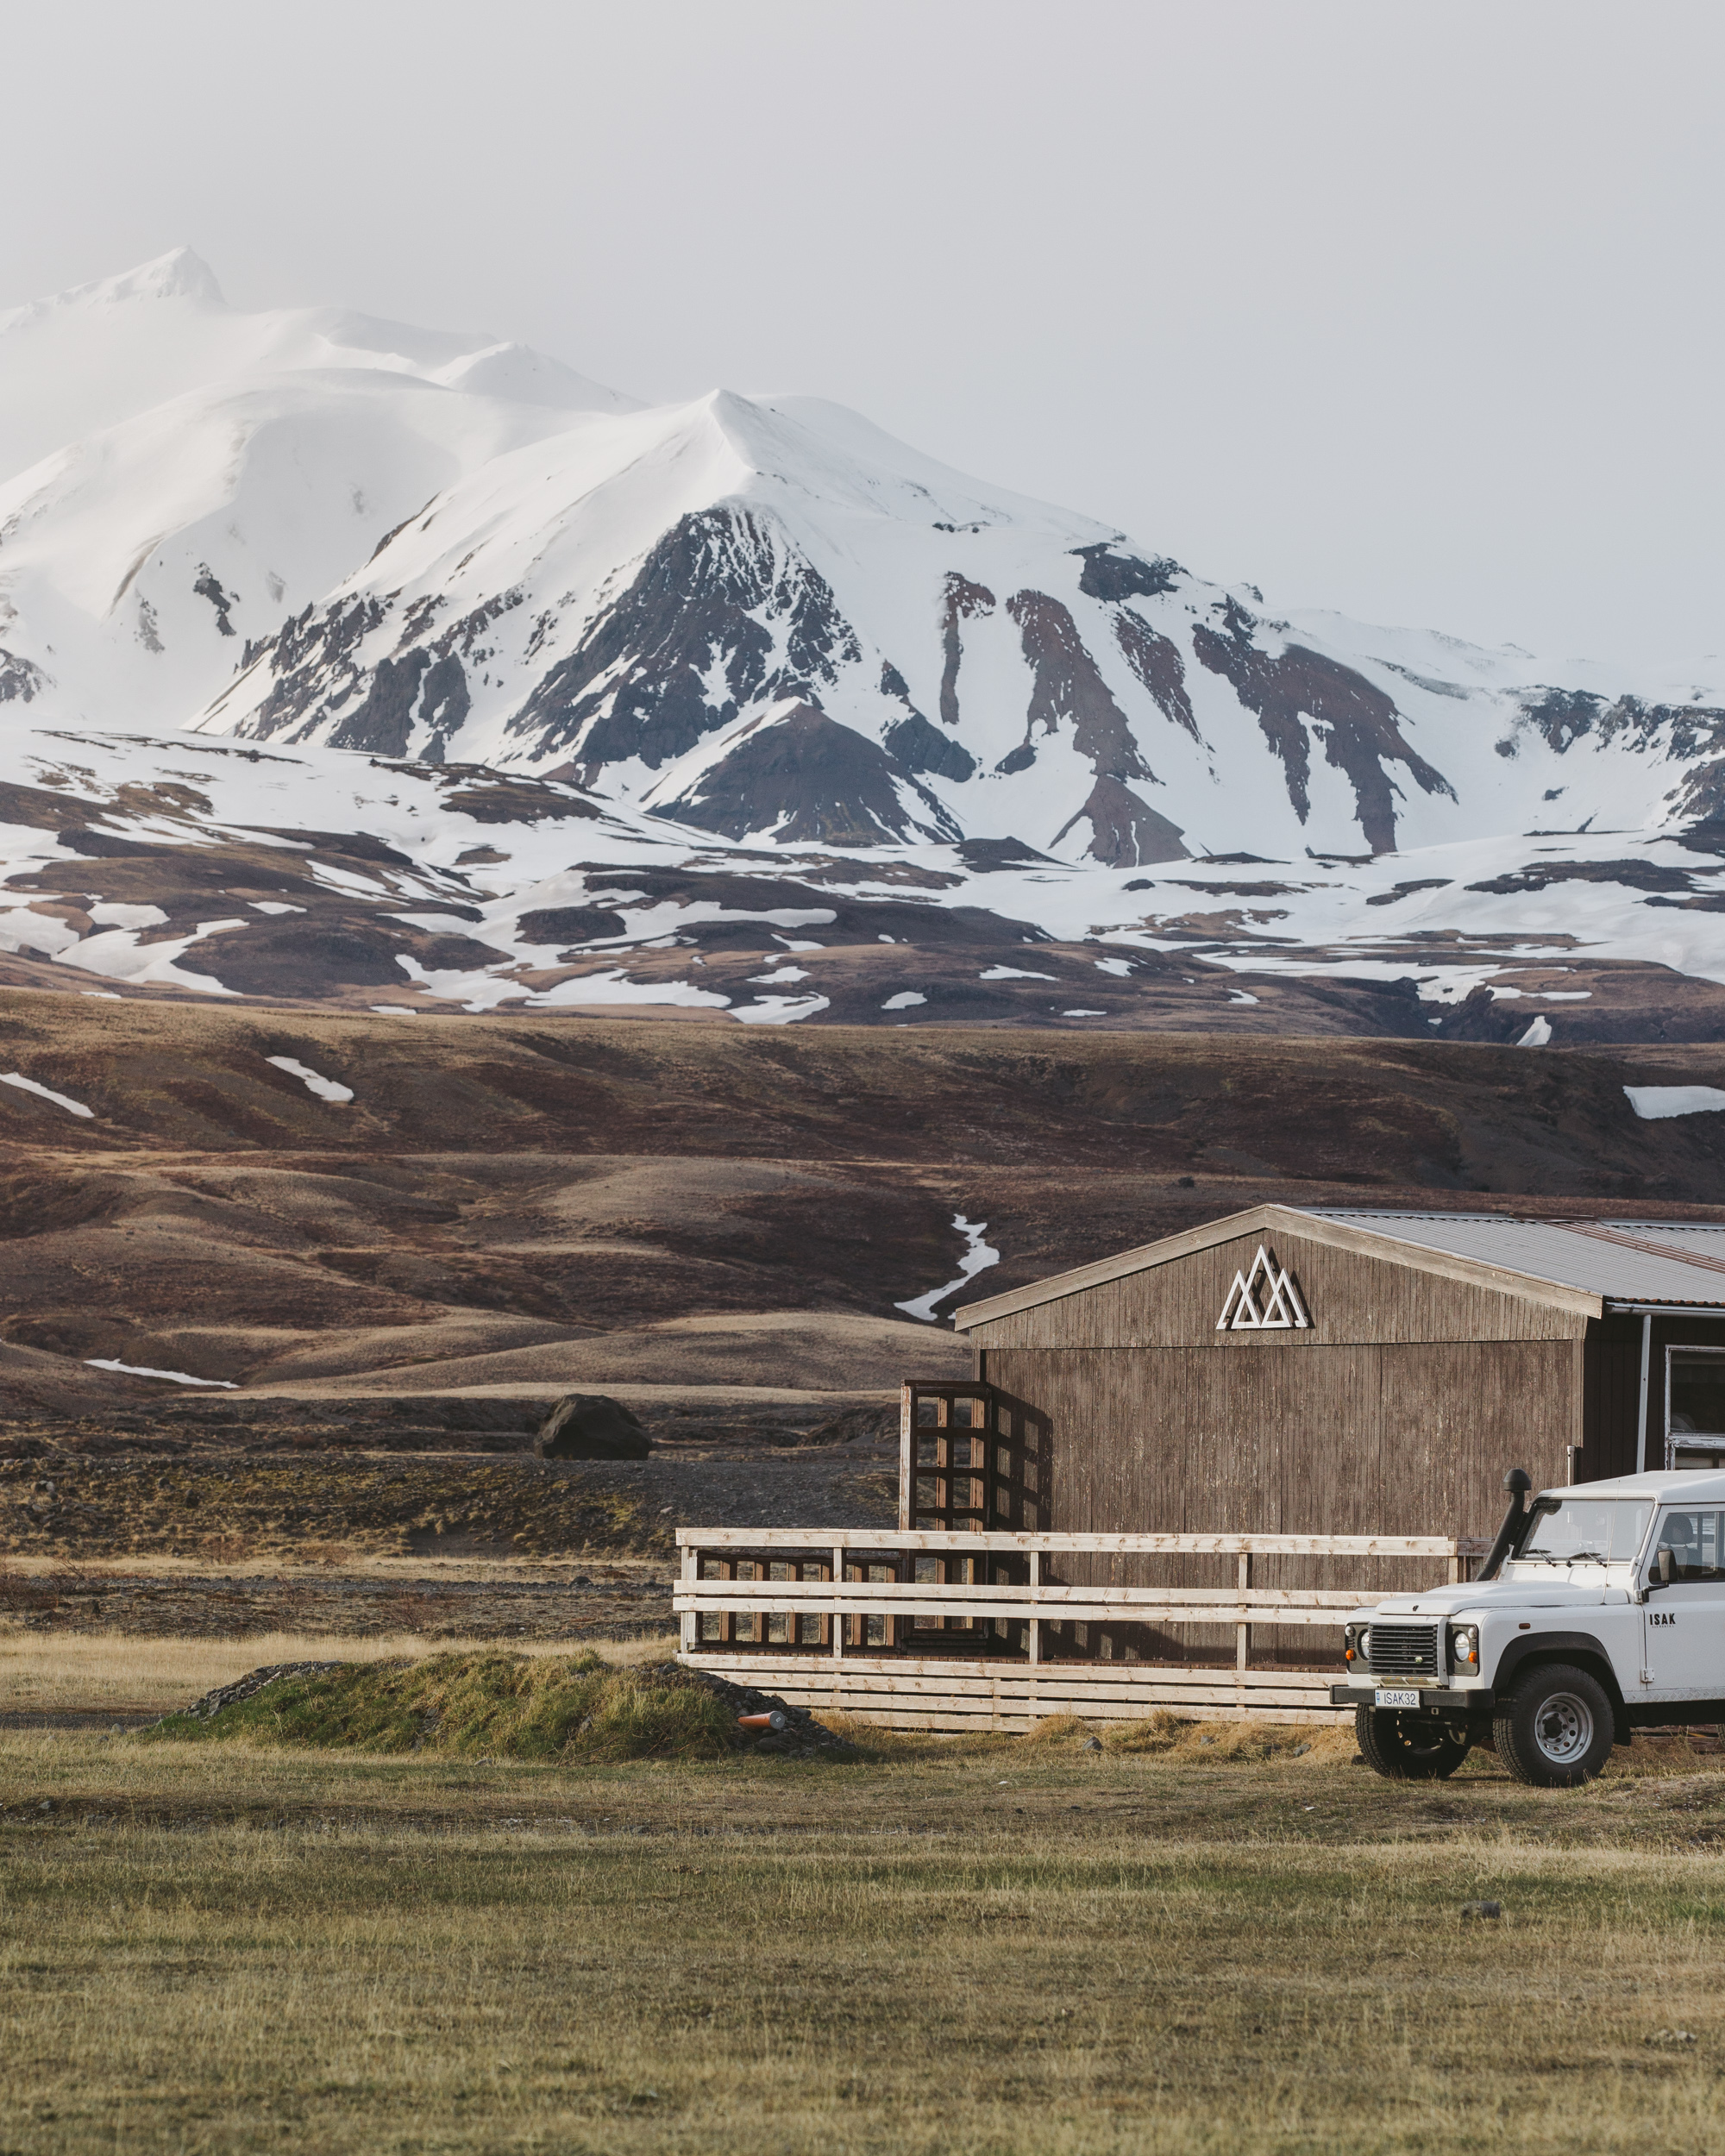 MikeSeehagel-commercial-lifestyle-photography-iceland-IMG_3568.jpg